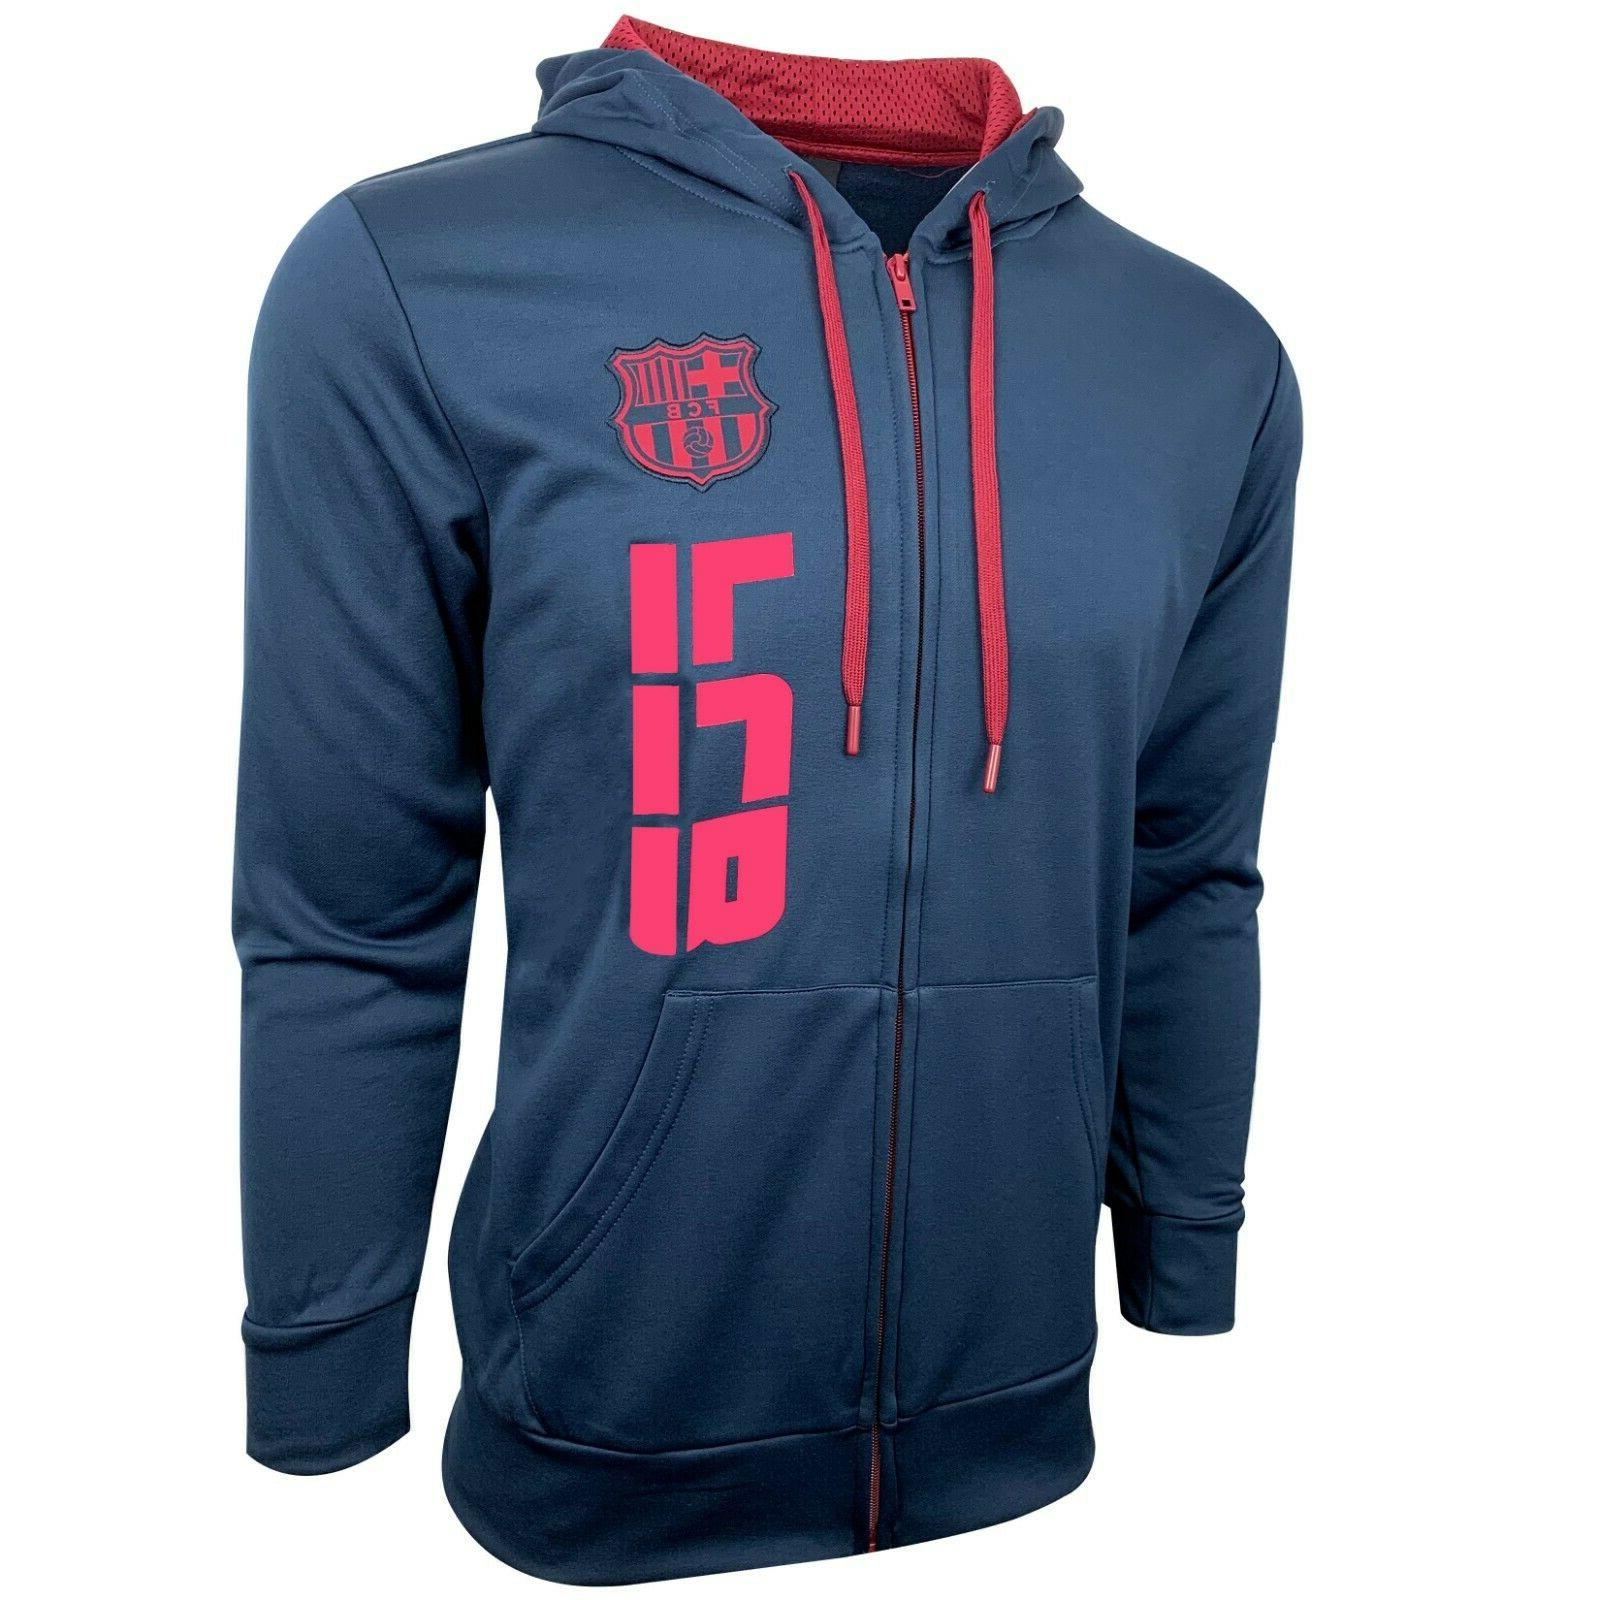 fc barcelona hoodie for adults and boys